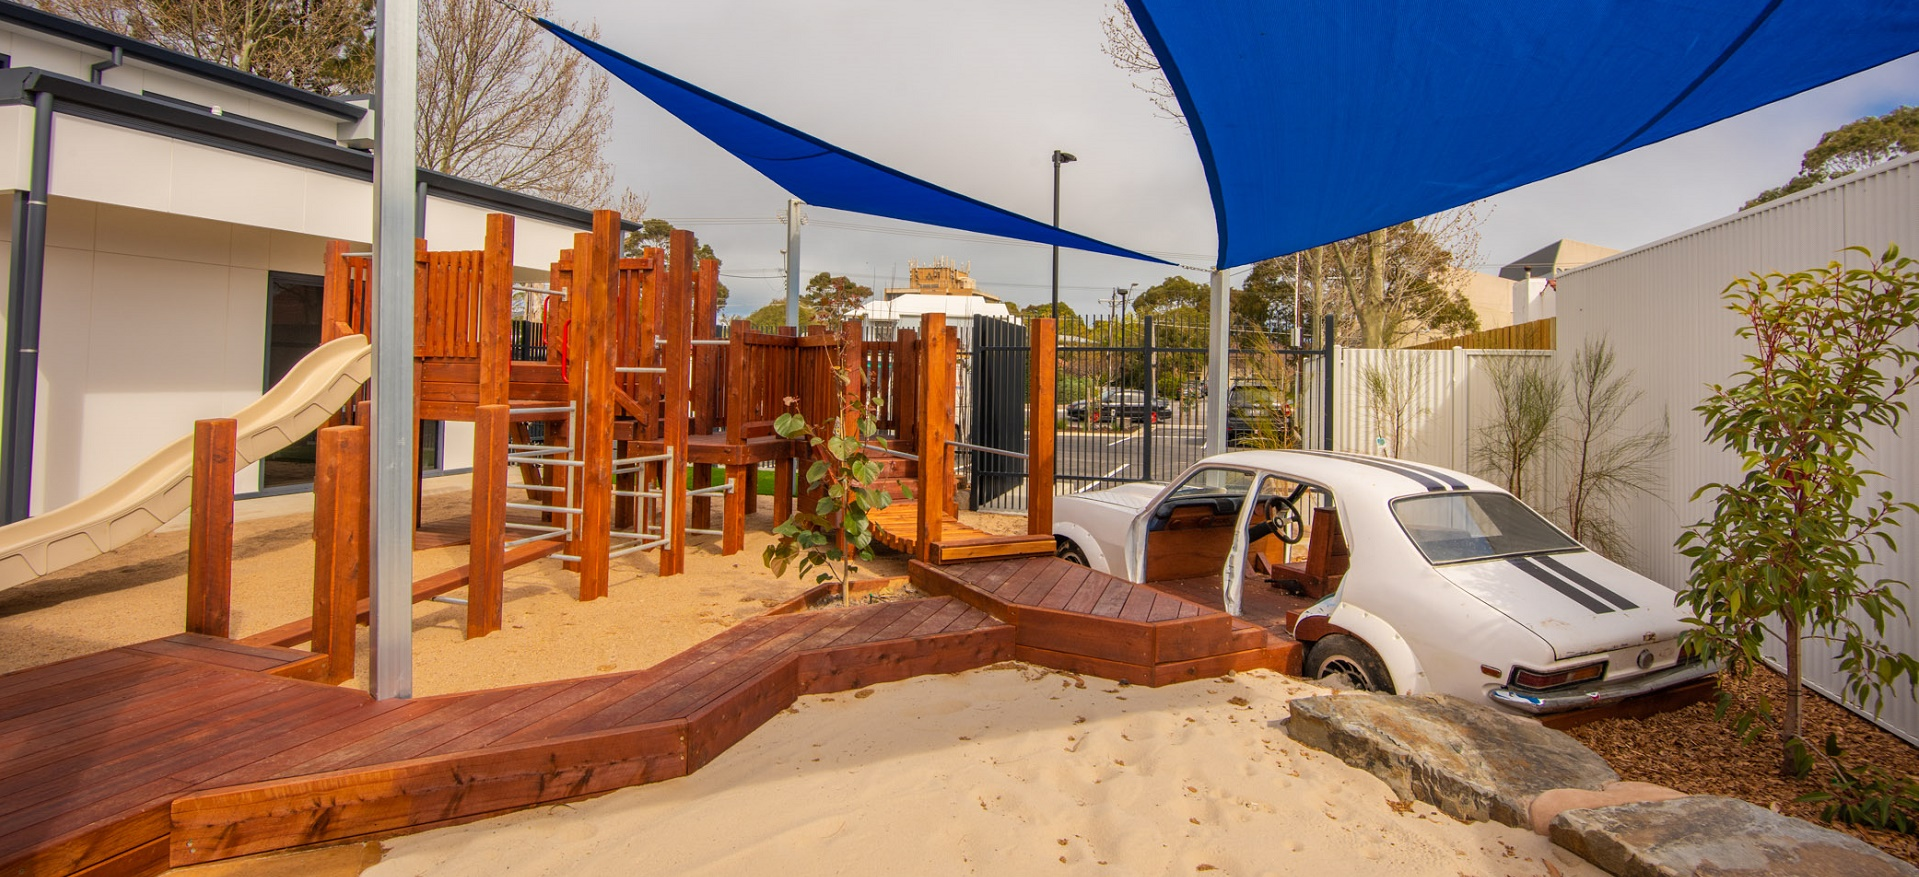 Children's playground with sandpit and wooden climbing equipment